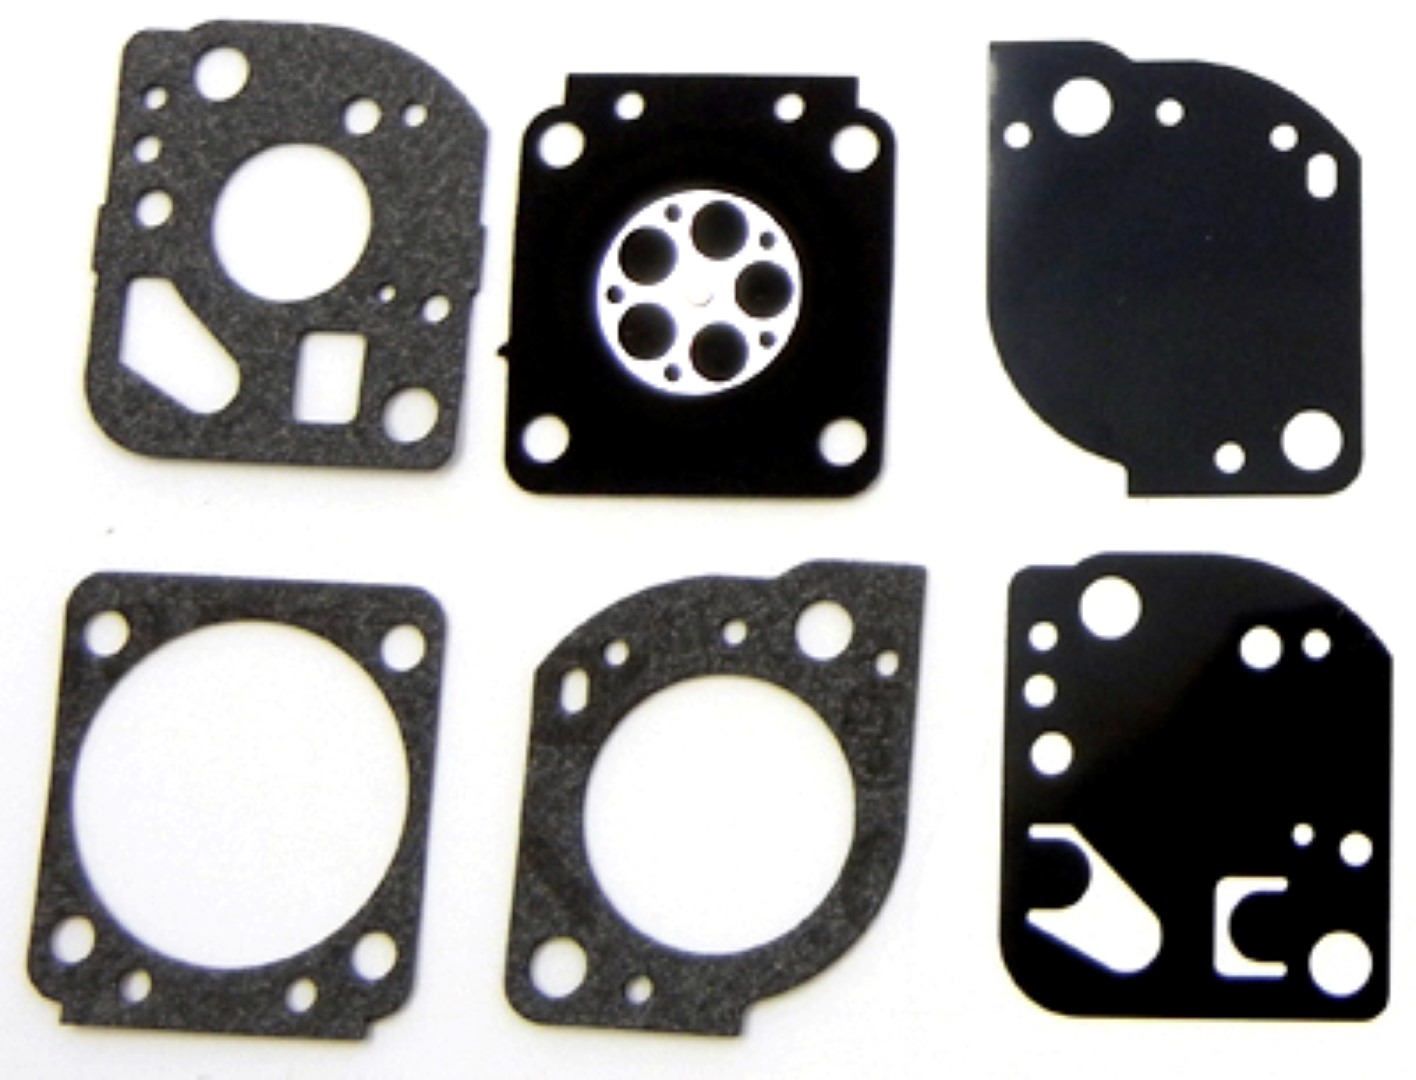 Gasket And Diaphragm Kit replaces GND-64